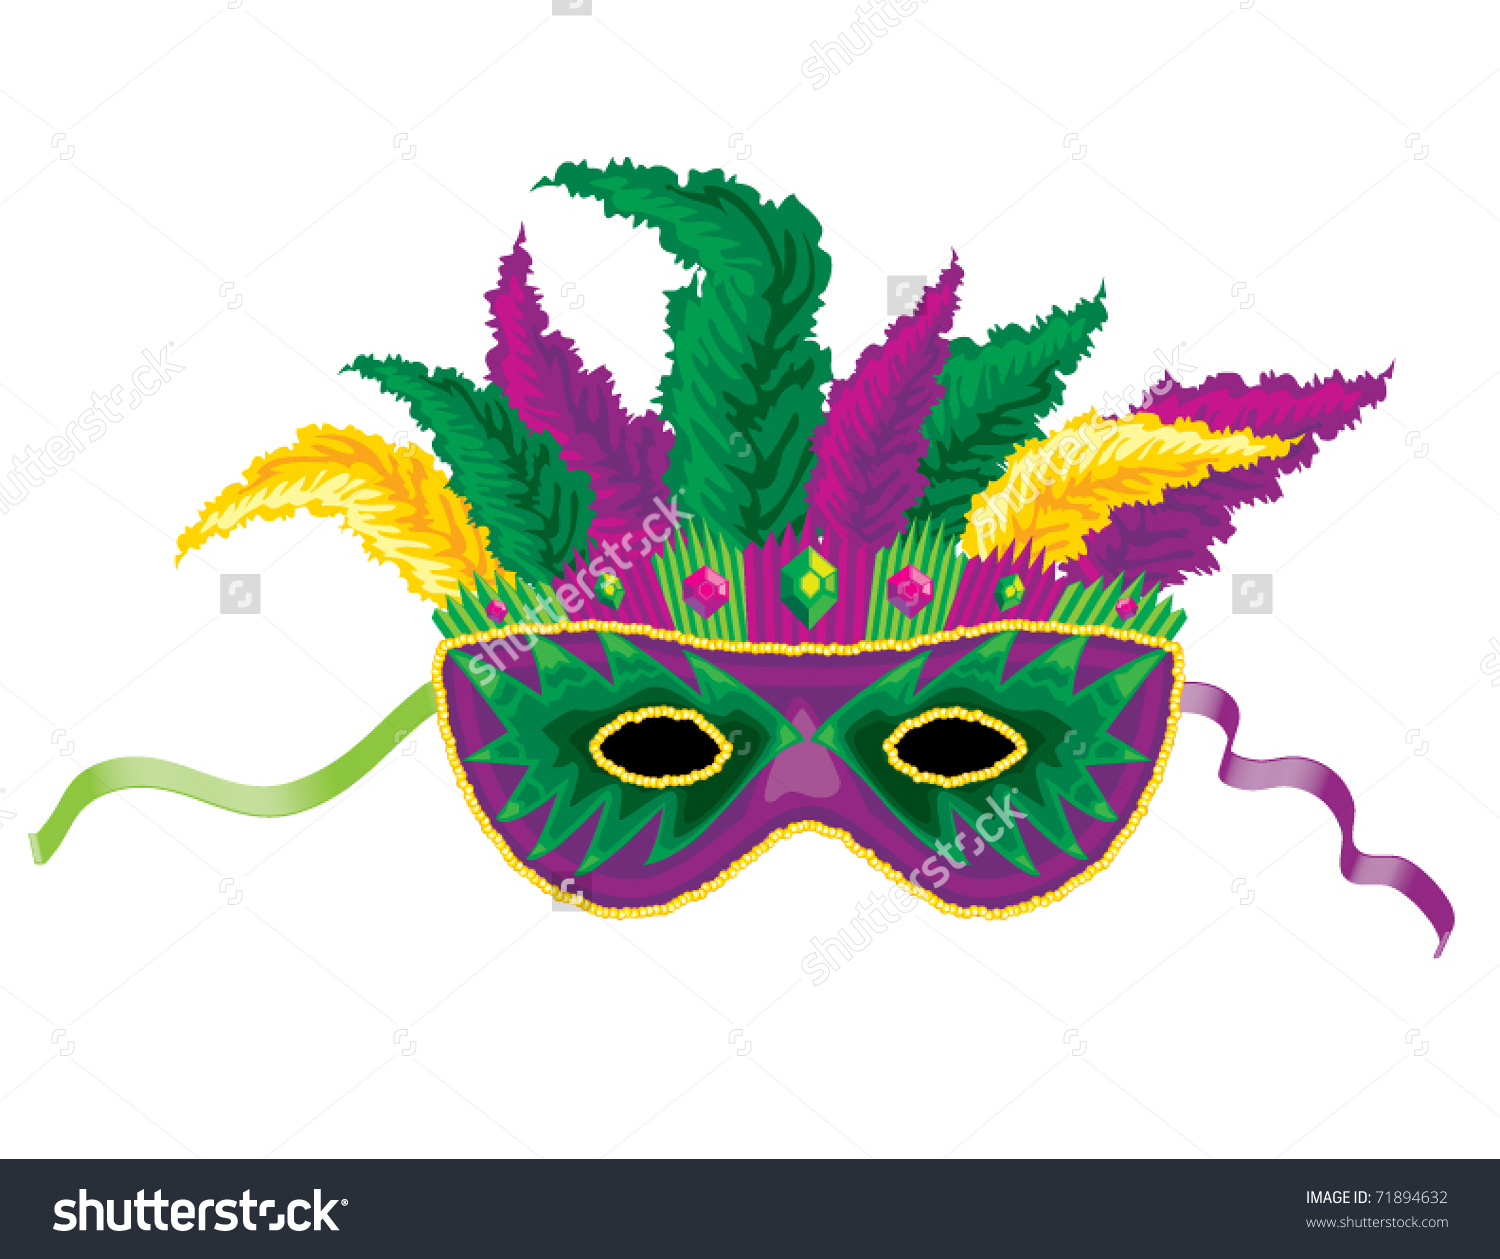 Mardi gras feathers clipart image library library Mardi Gras Mask Clipart Group with 50+ items image library library